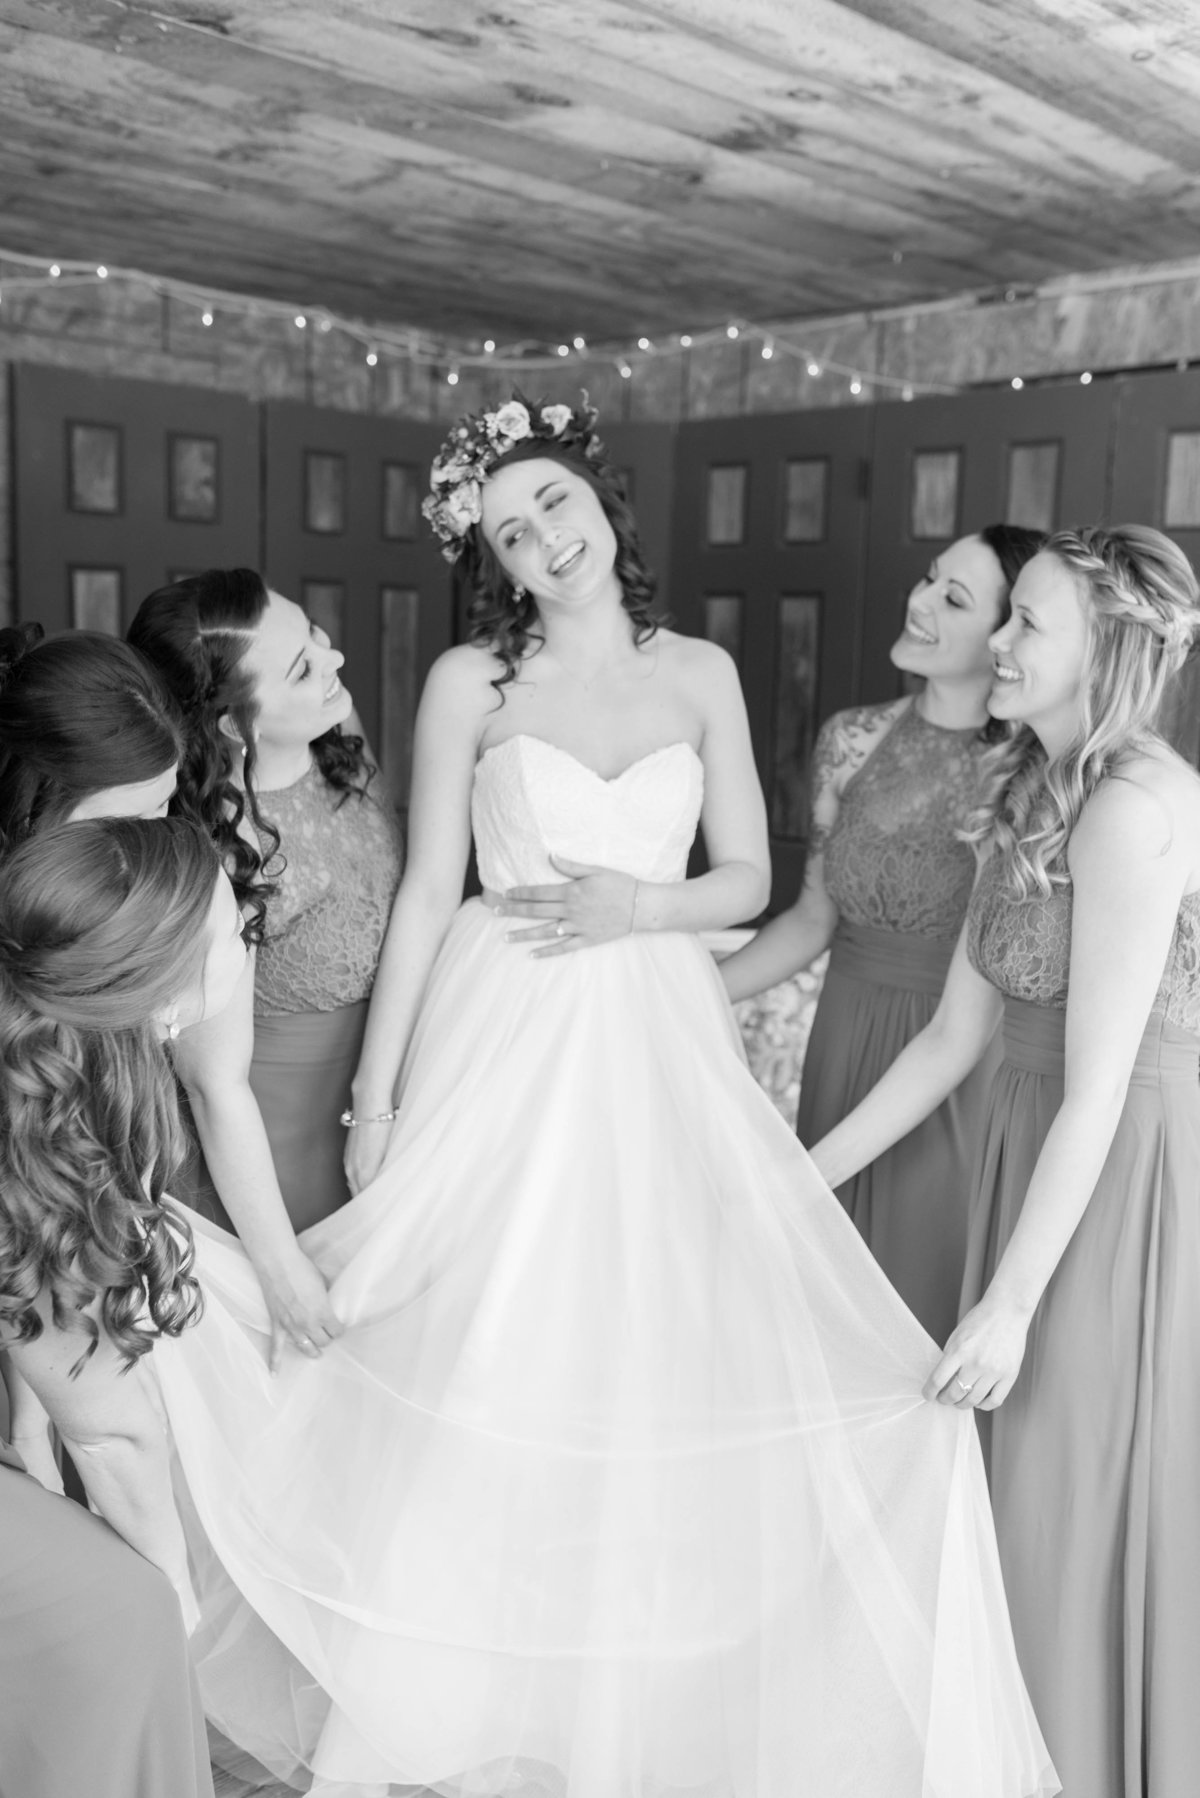 stone mountain arts center wedding photos linda barry photography-16